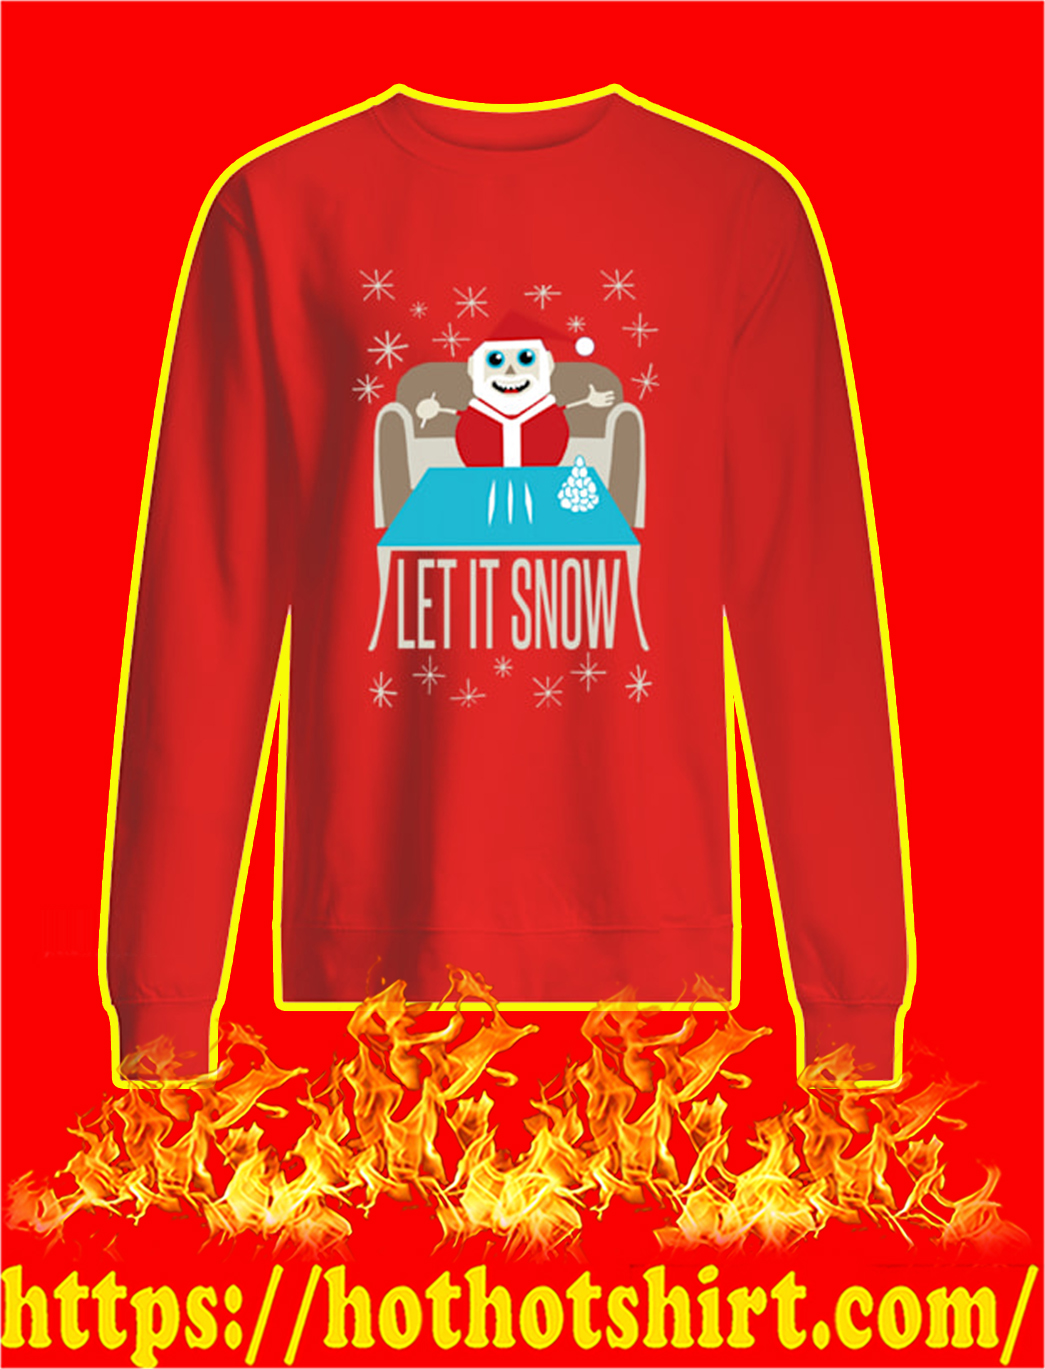 Let It Snow Sweater- red